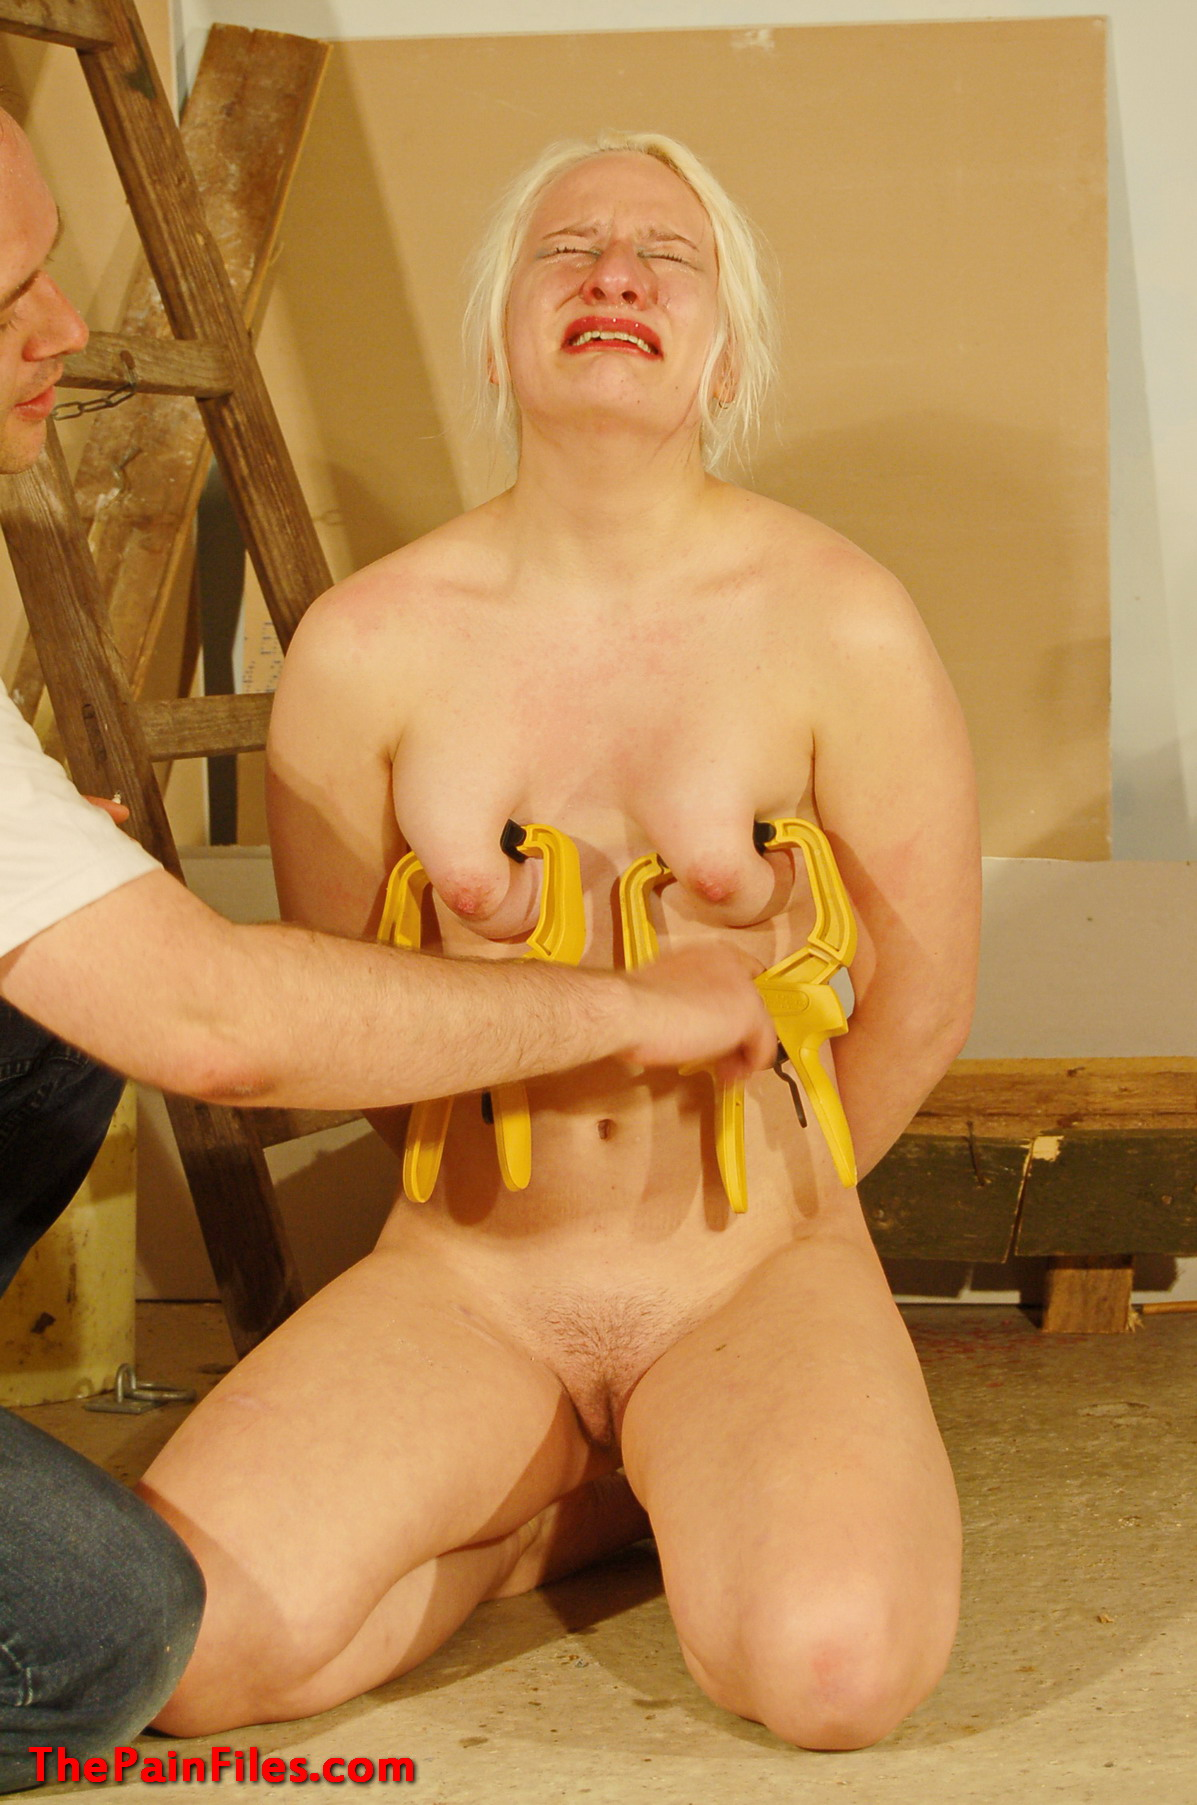 bdsm extreme private porno bilder